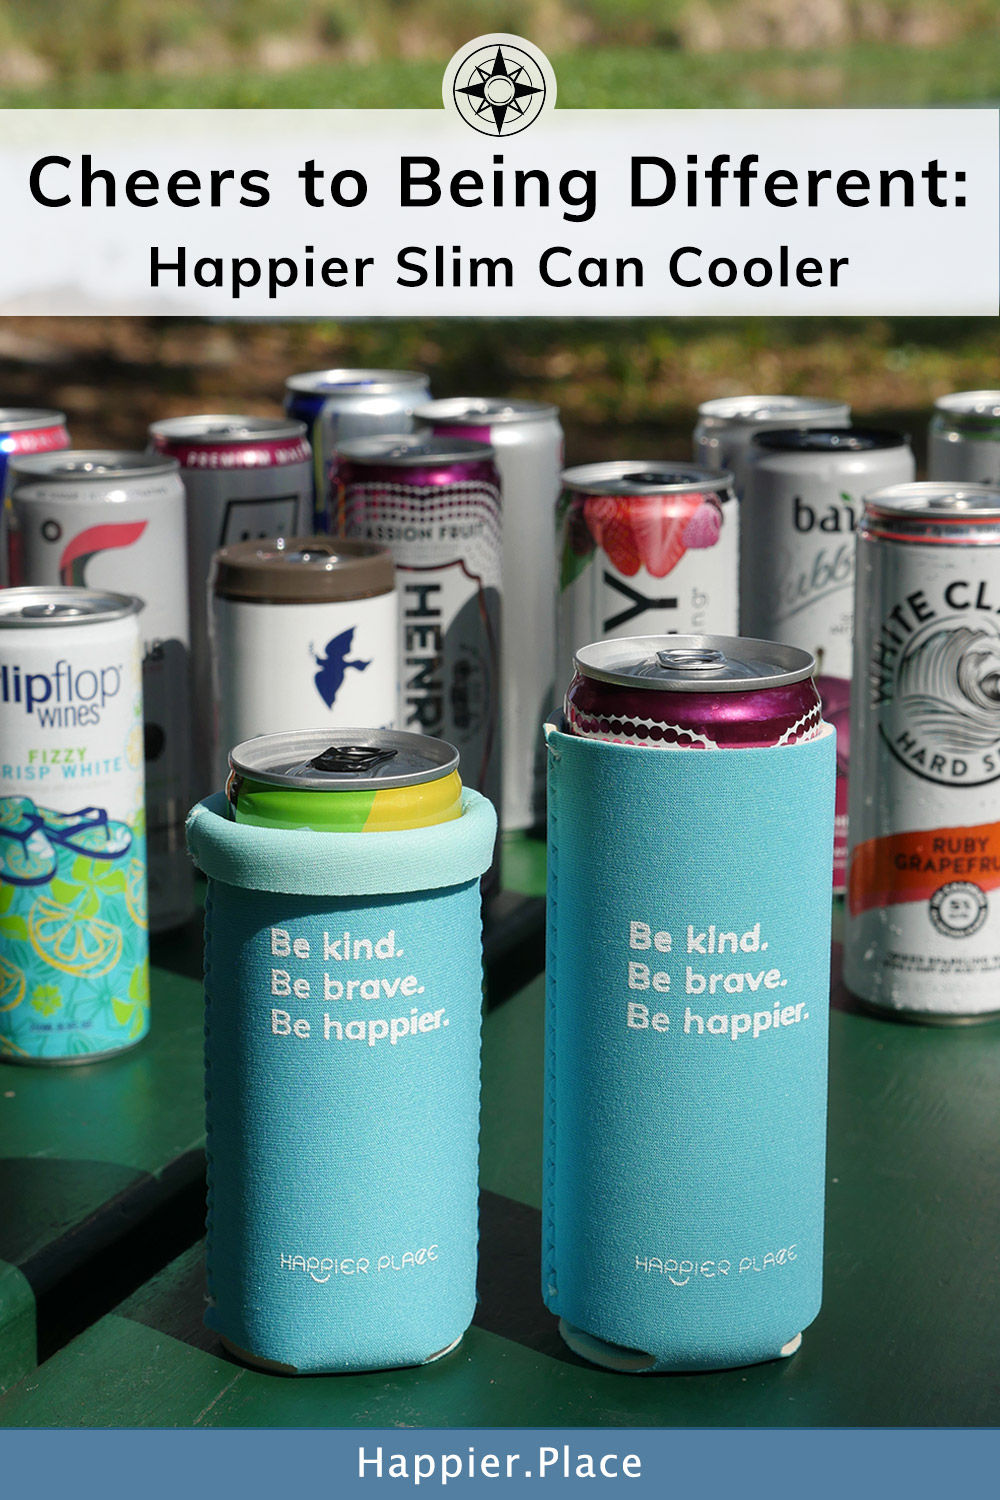 Cheers to Being Different: (The First) Happier Slim Can Cooler